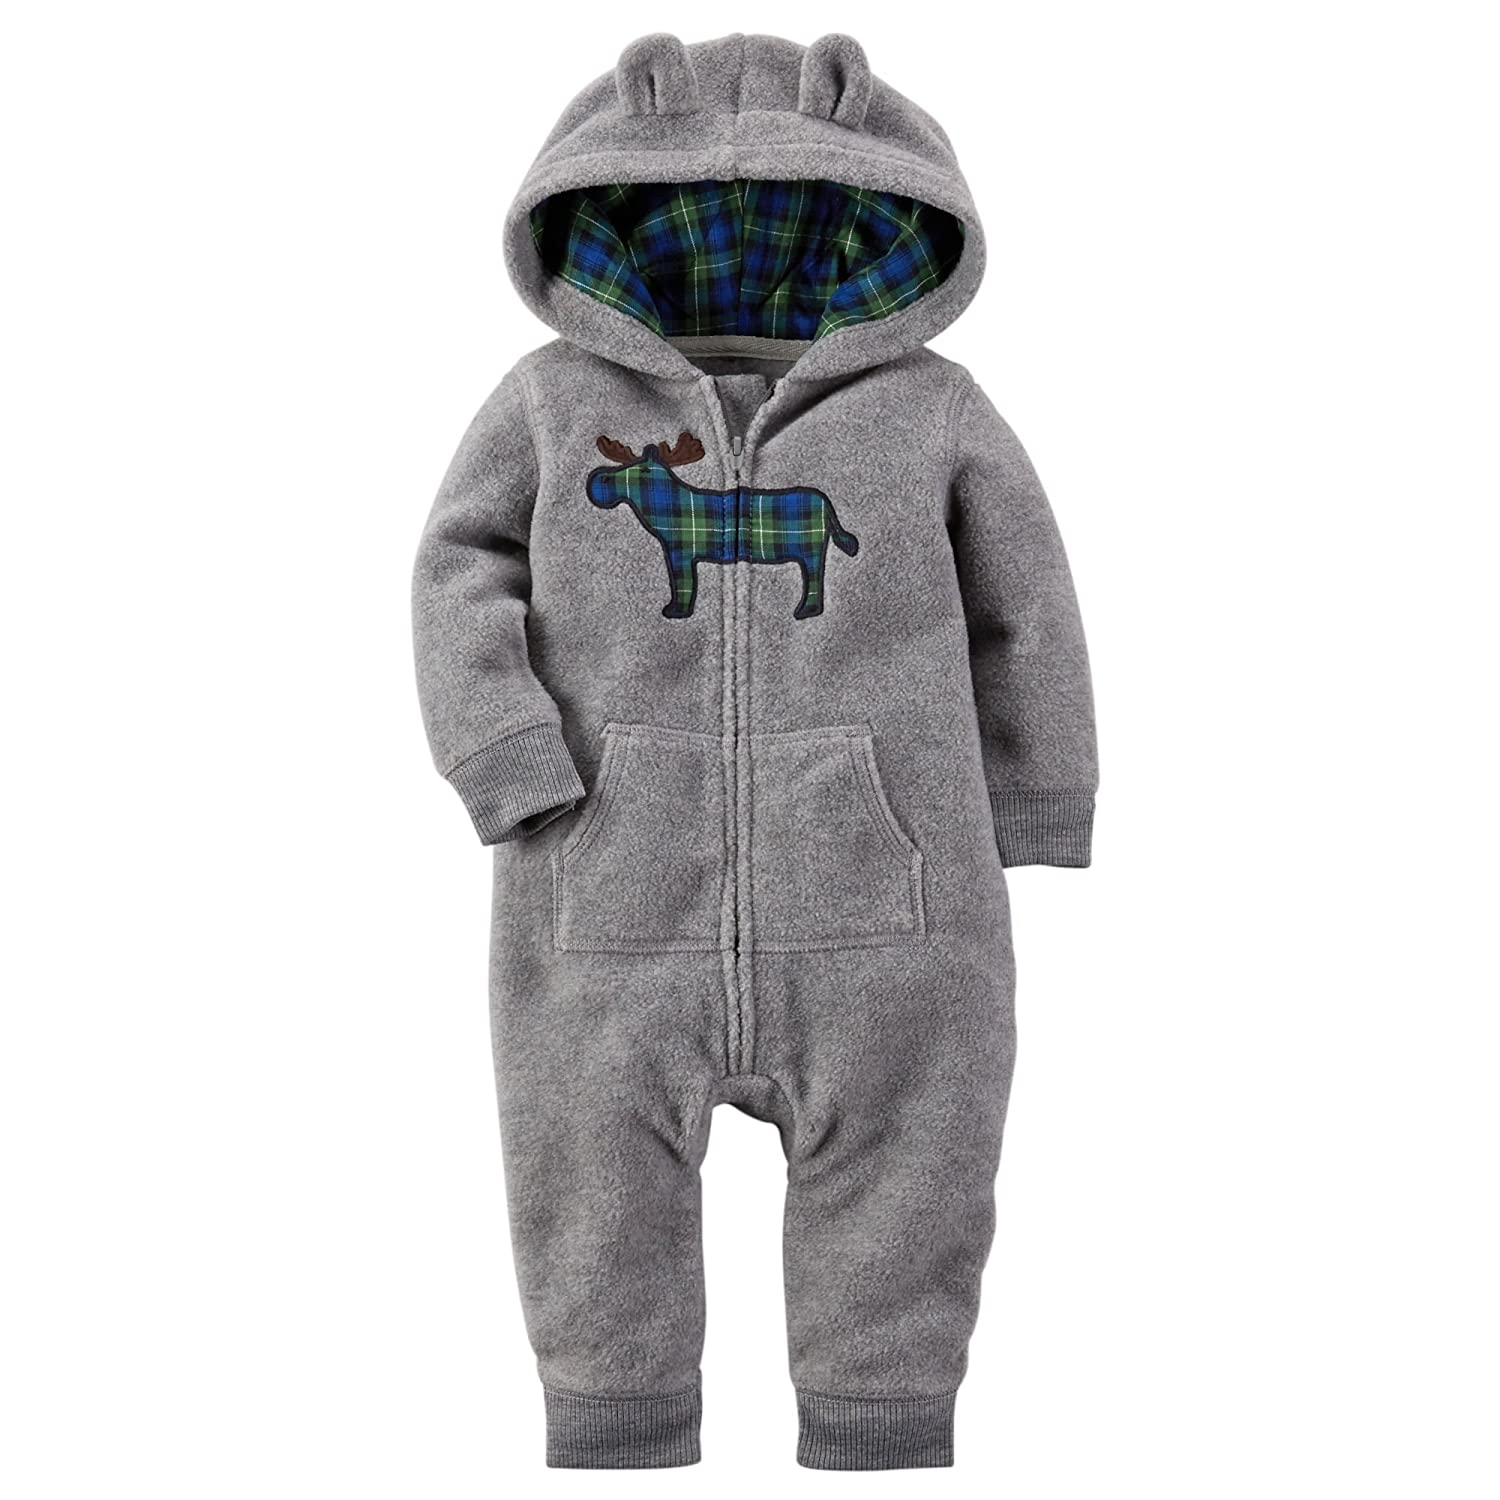 cd76681eff88 Amazon.com  Carters Baby Boys Applique Hooded Fleece Jumpsuit Moose ...